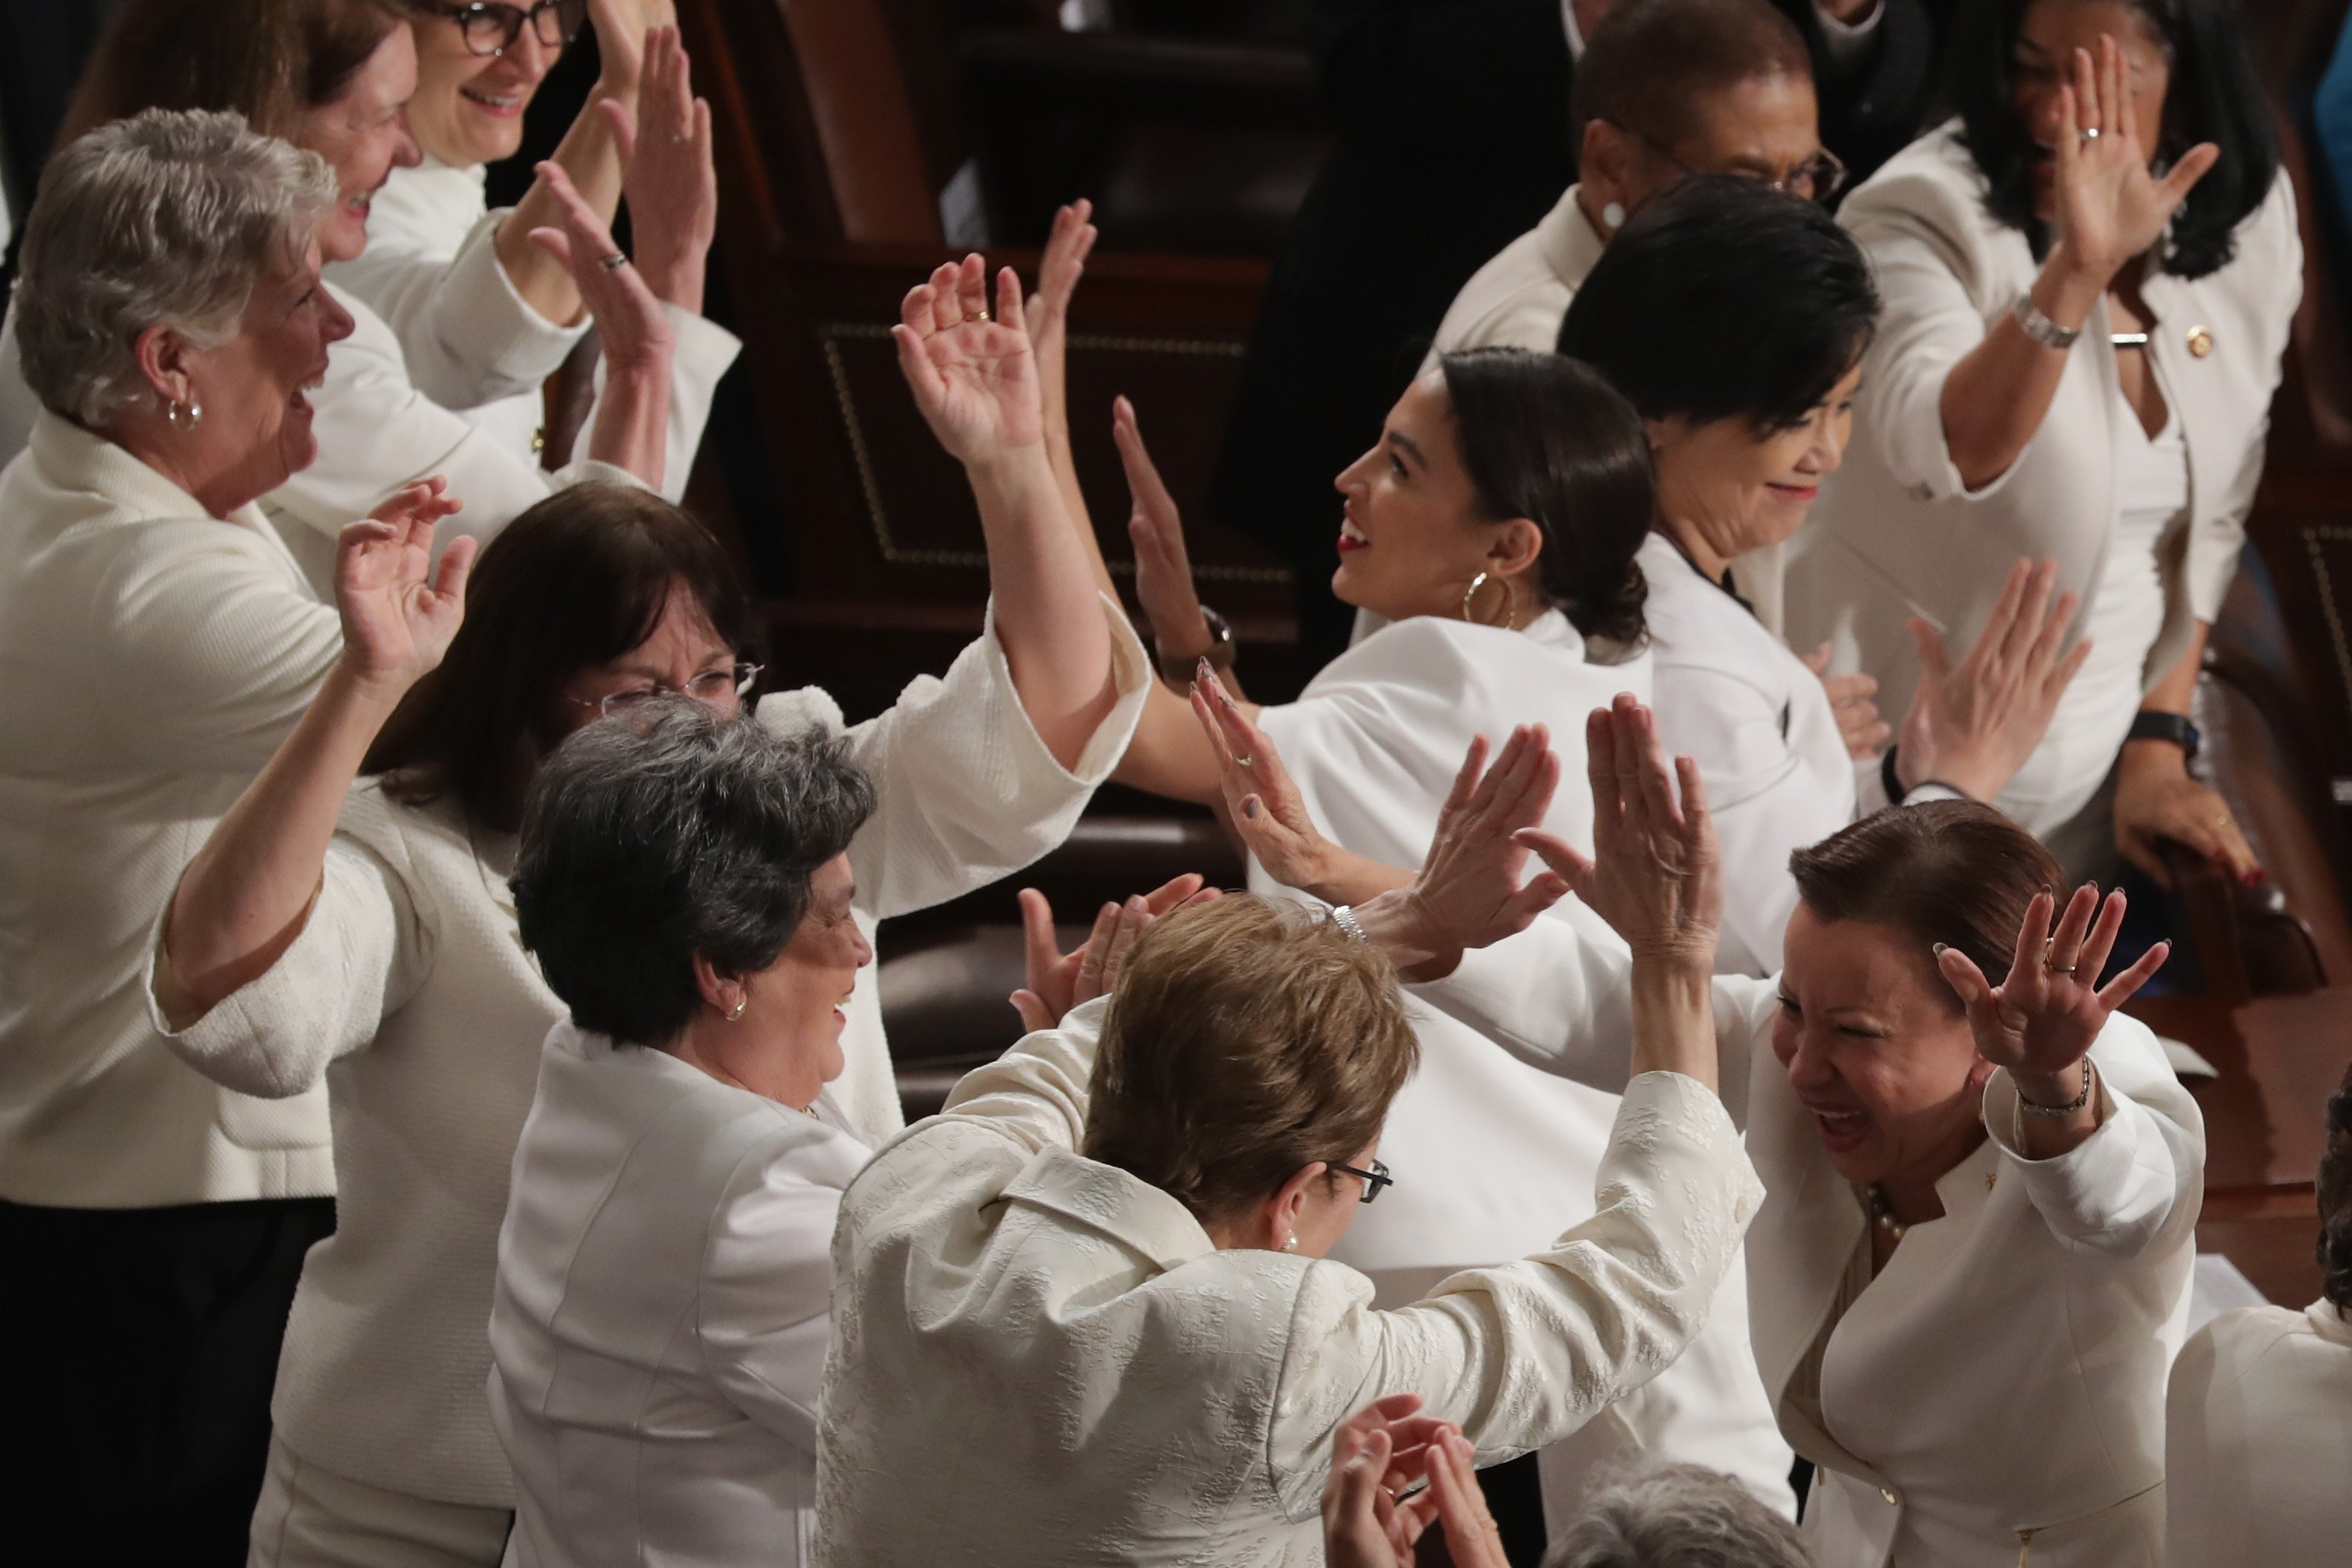 Congresswomen wearing white at the State of the Union address | Photo: Getty Images